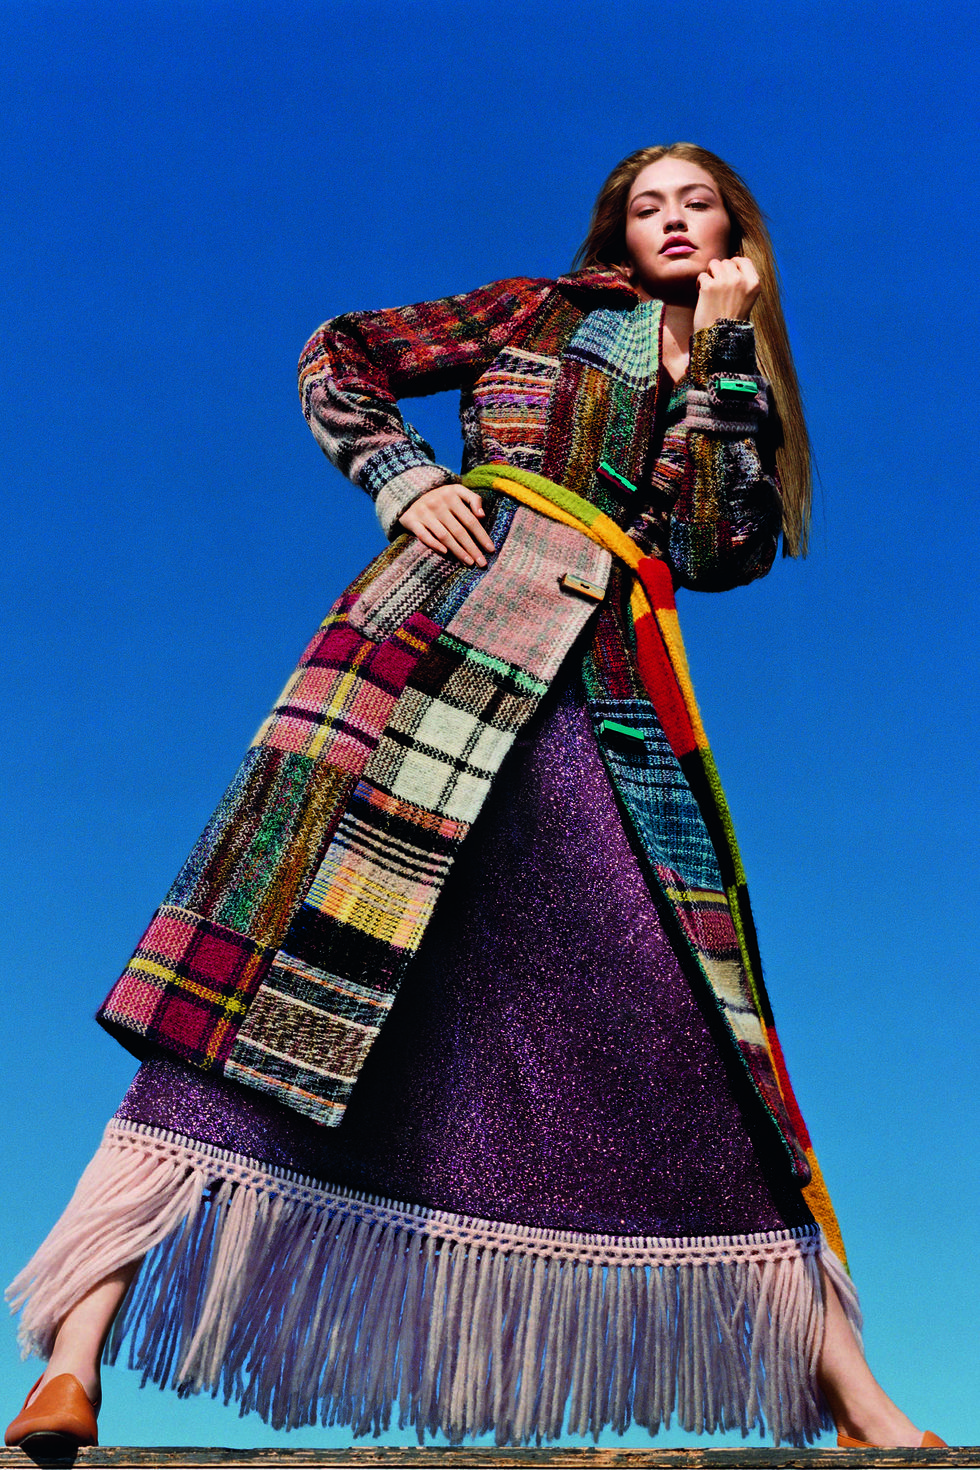 hbz-best-ads-missoni-1532616094 (1)